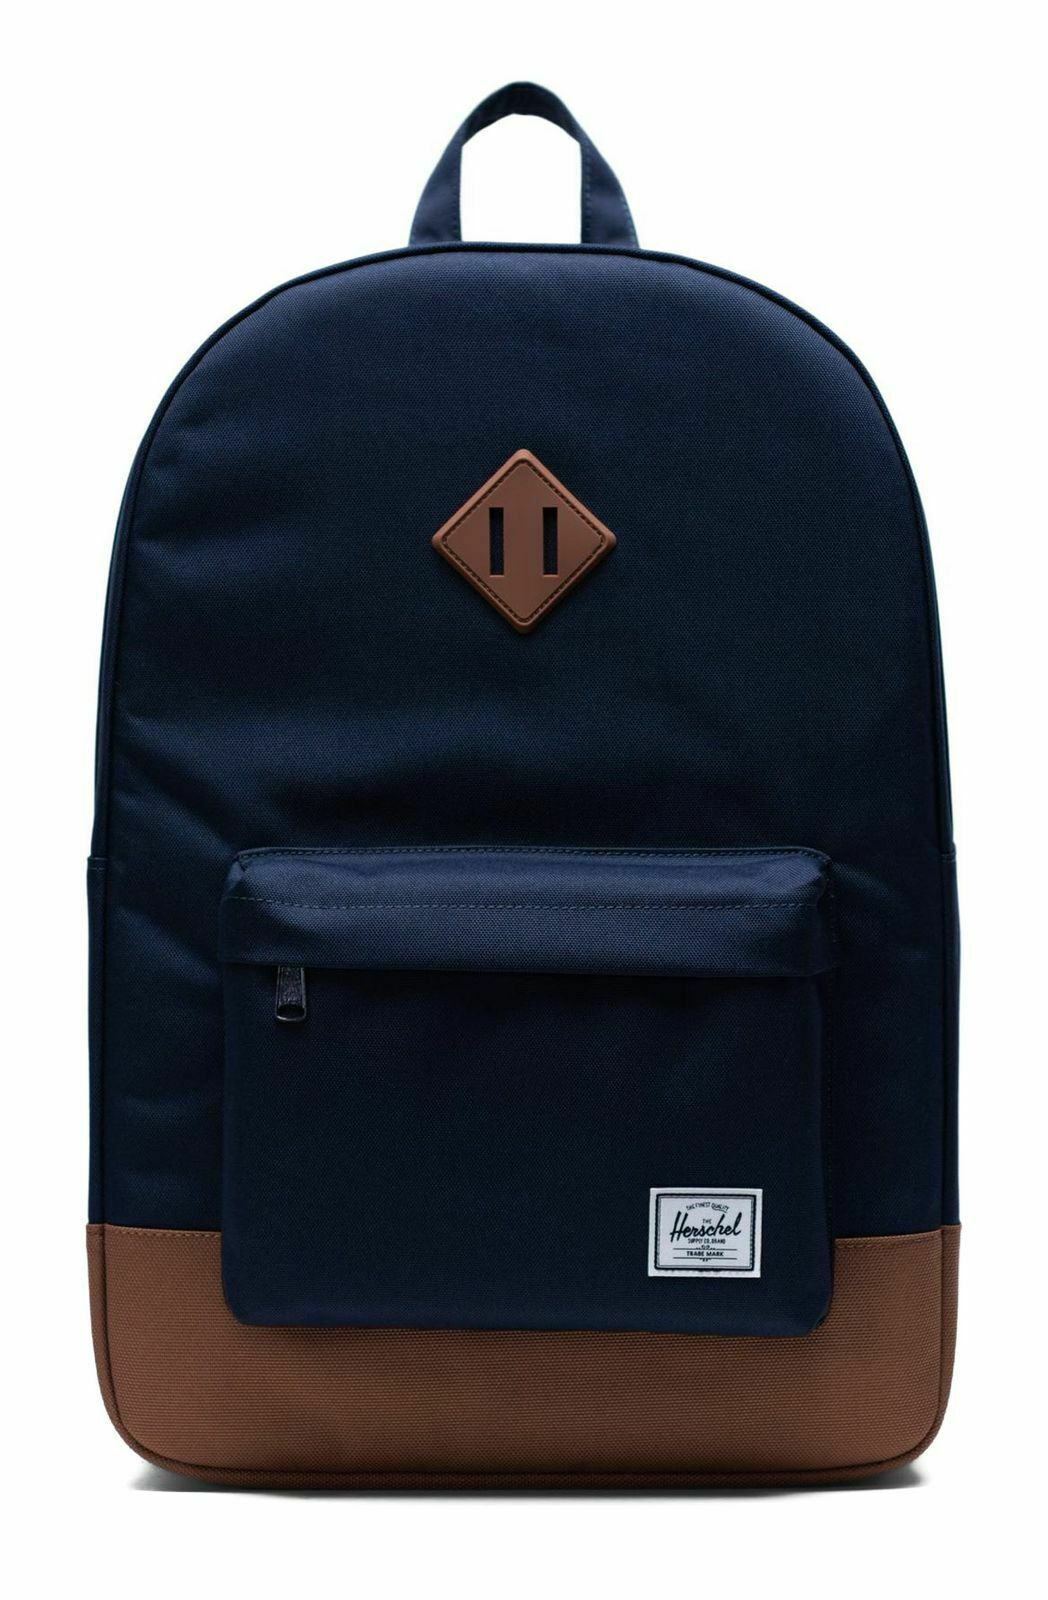 Backpack Herschel Heritage Peacoat  Saddle Marronee